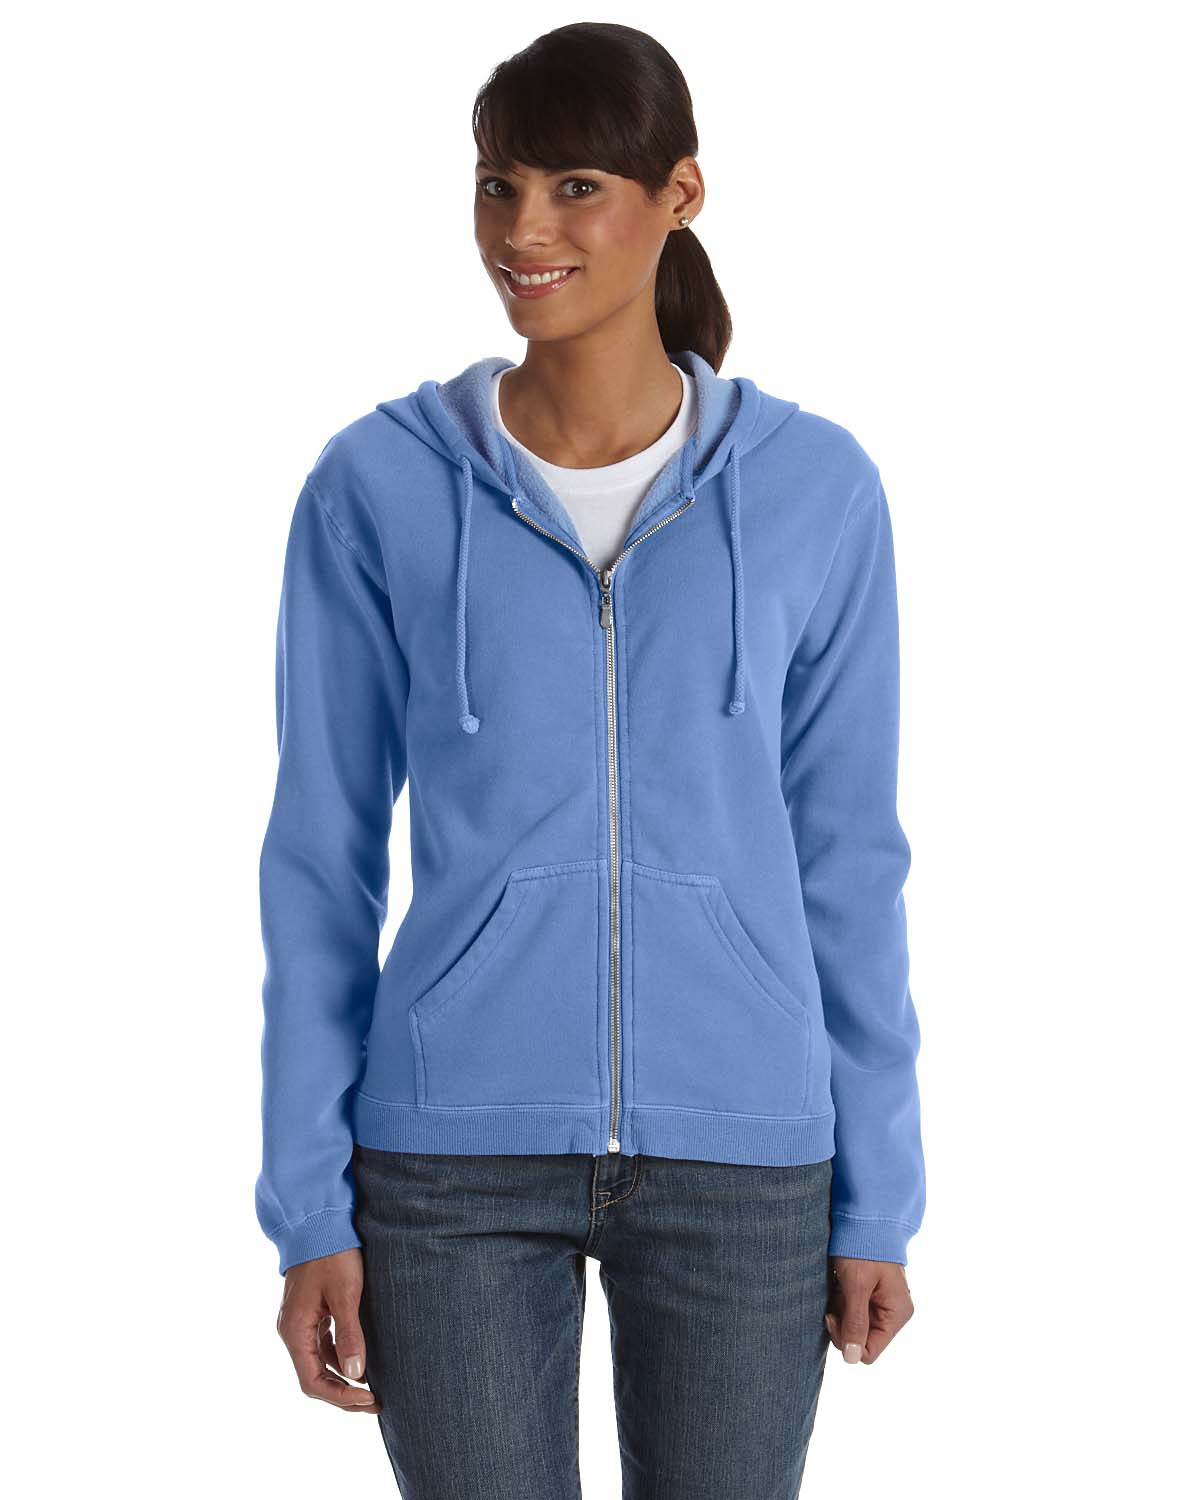 Comfort Colors 1598 Pigment-Dyed Ladies' Full-Zip Hooded Sweatshirt